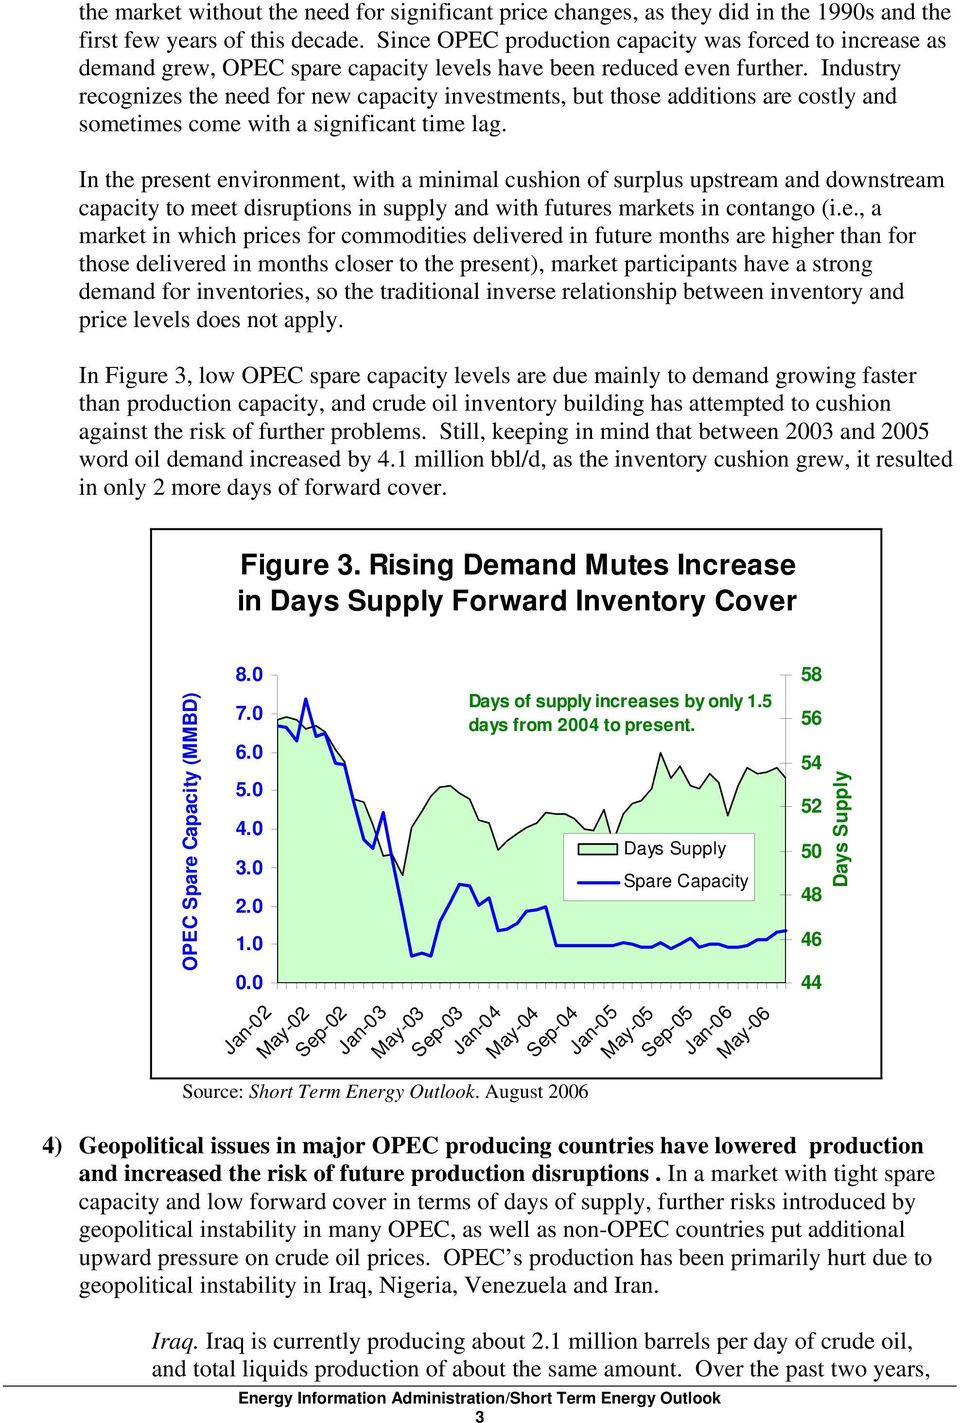 STEO Supplement: Why are oil prices so high? - PDF